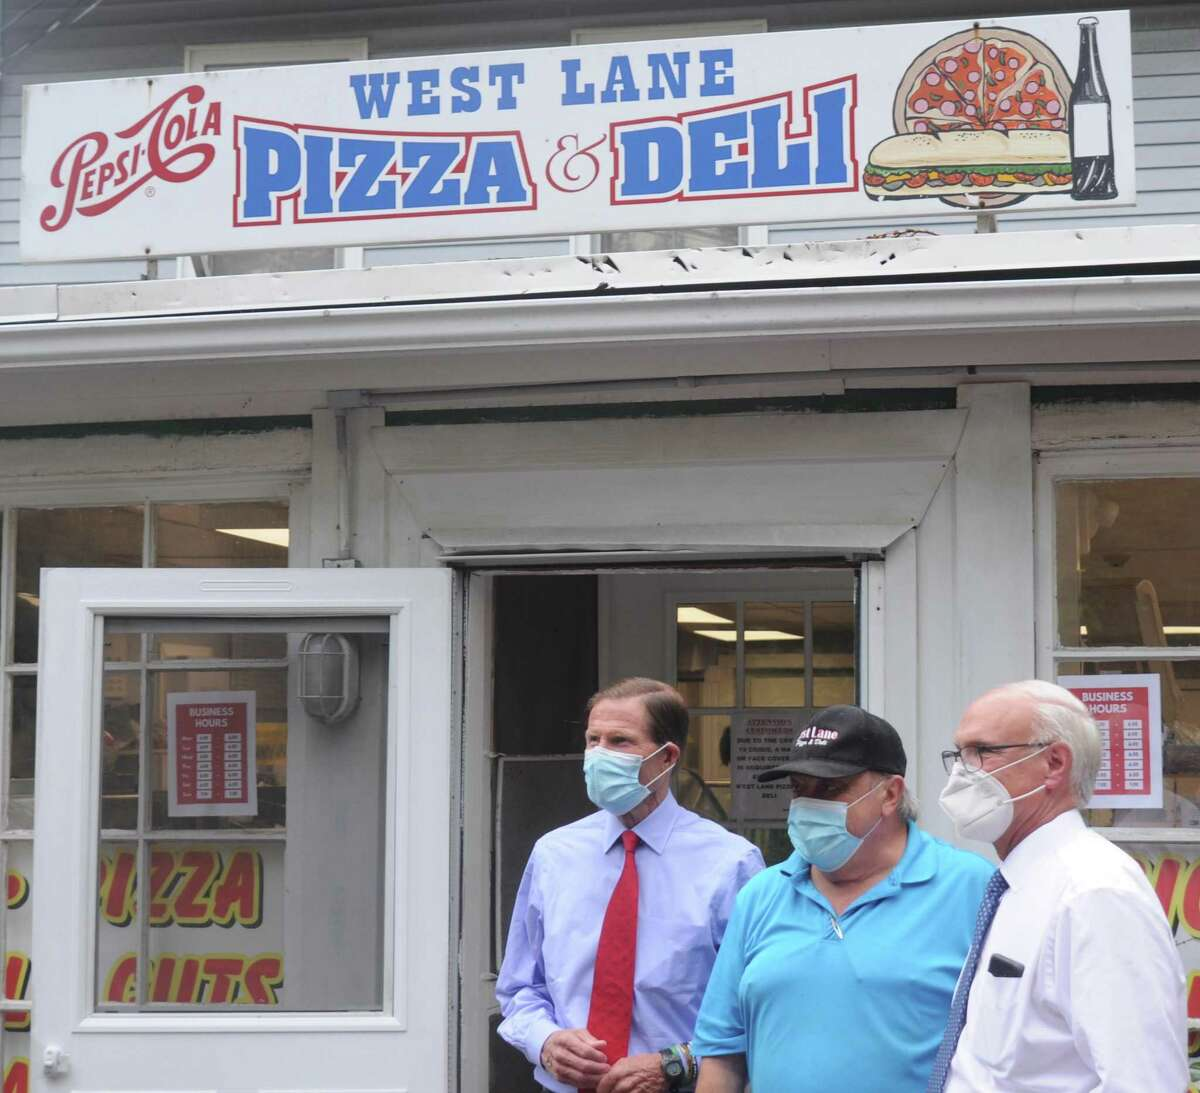 U.S. Senator Richard Blumenthal, West Lane Pizza and Deli owner Kosta Efstathiades and First Selectman Rudy Marconi on Wednesday at the deli, which lost inventory and a week of business due to delays in power restoration.